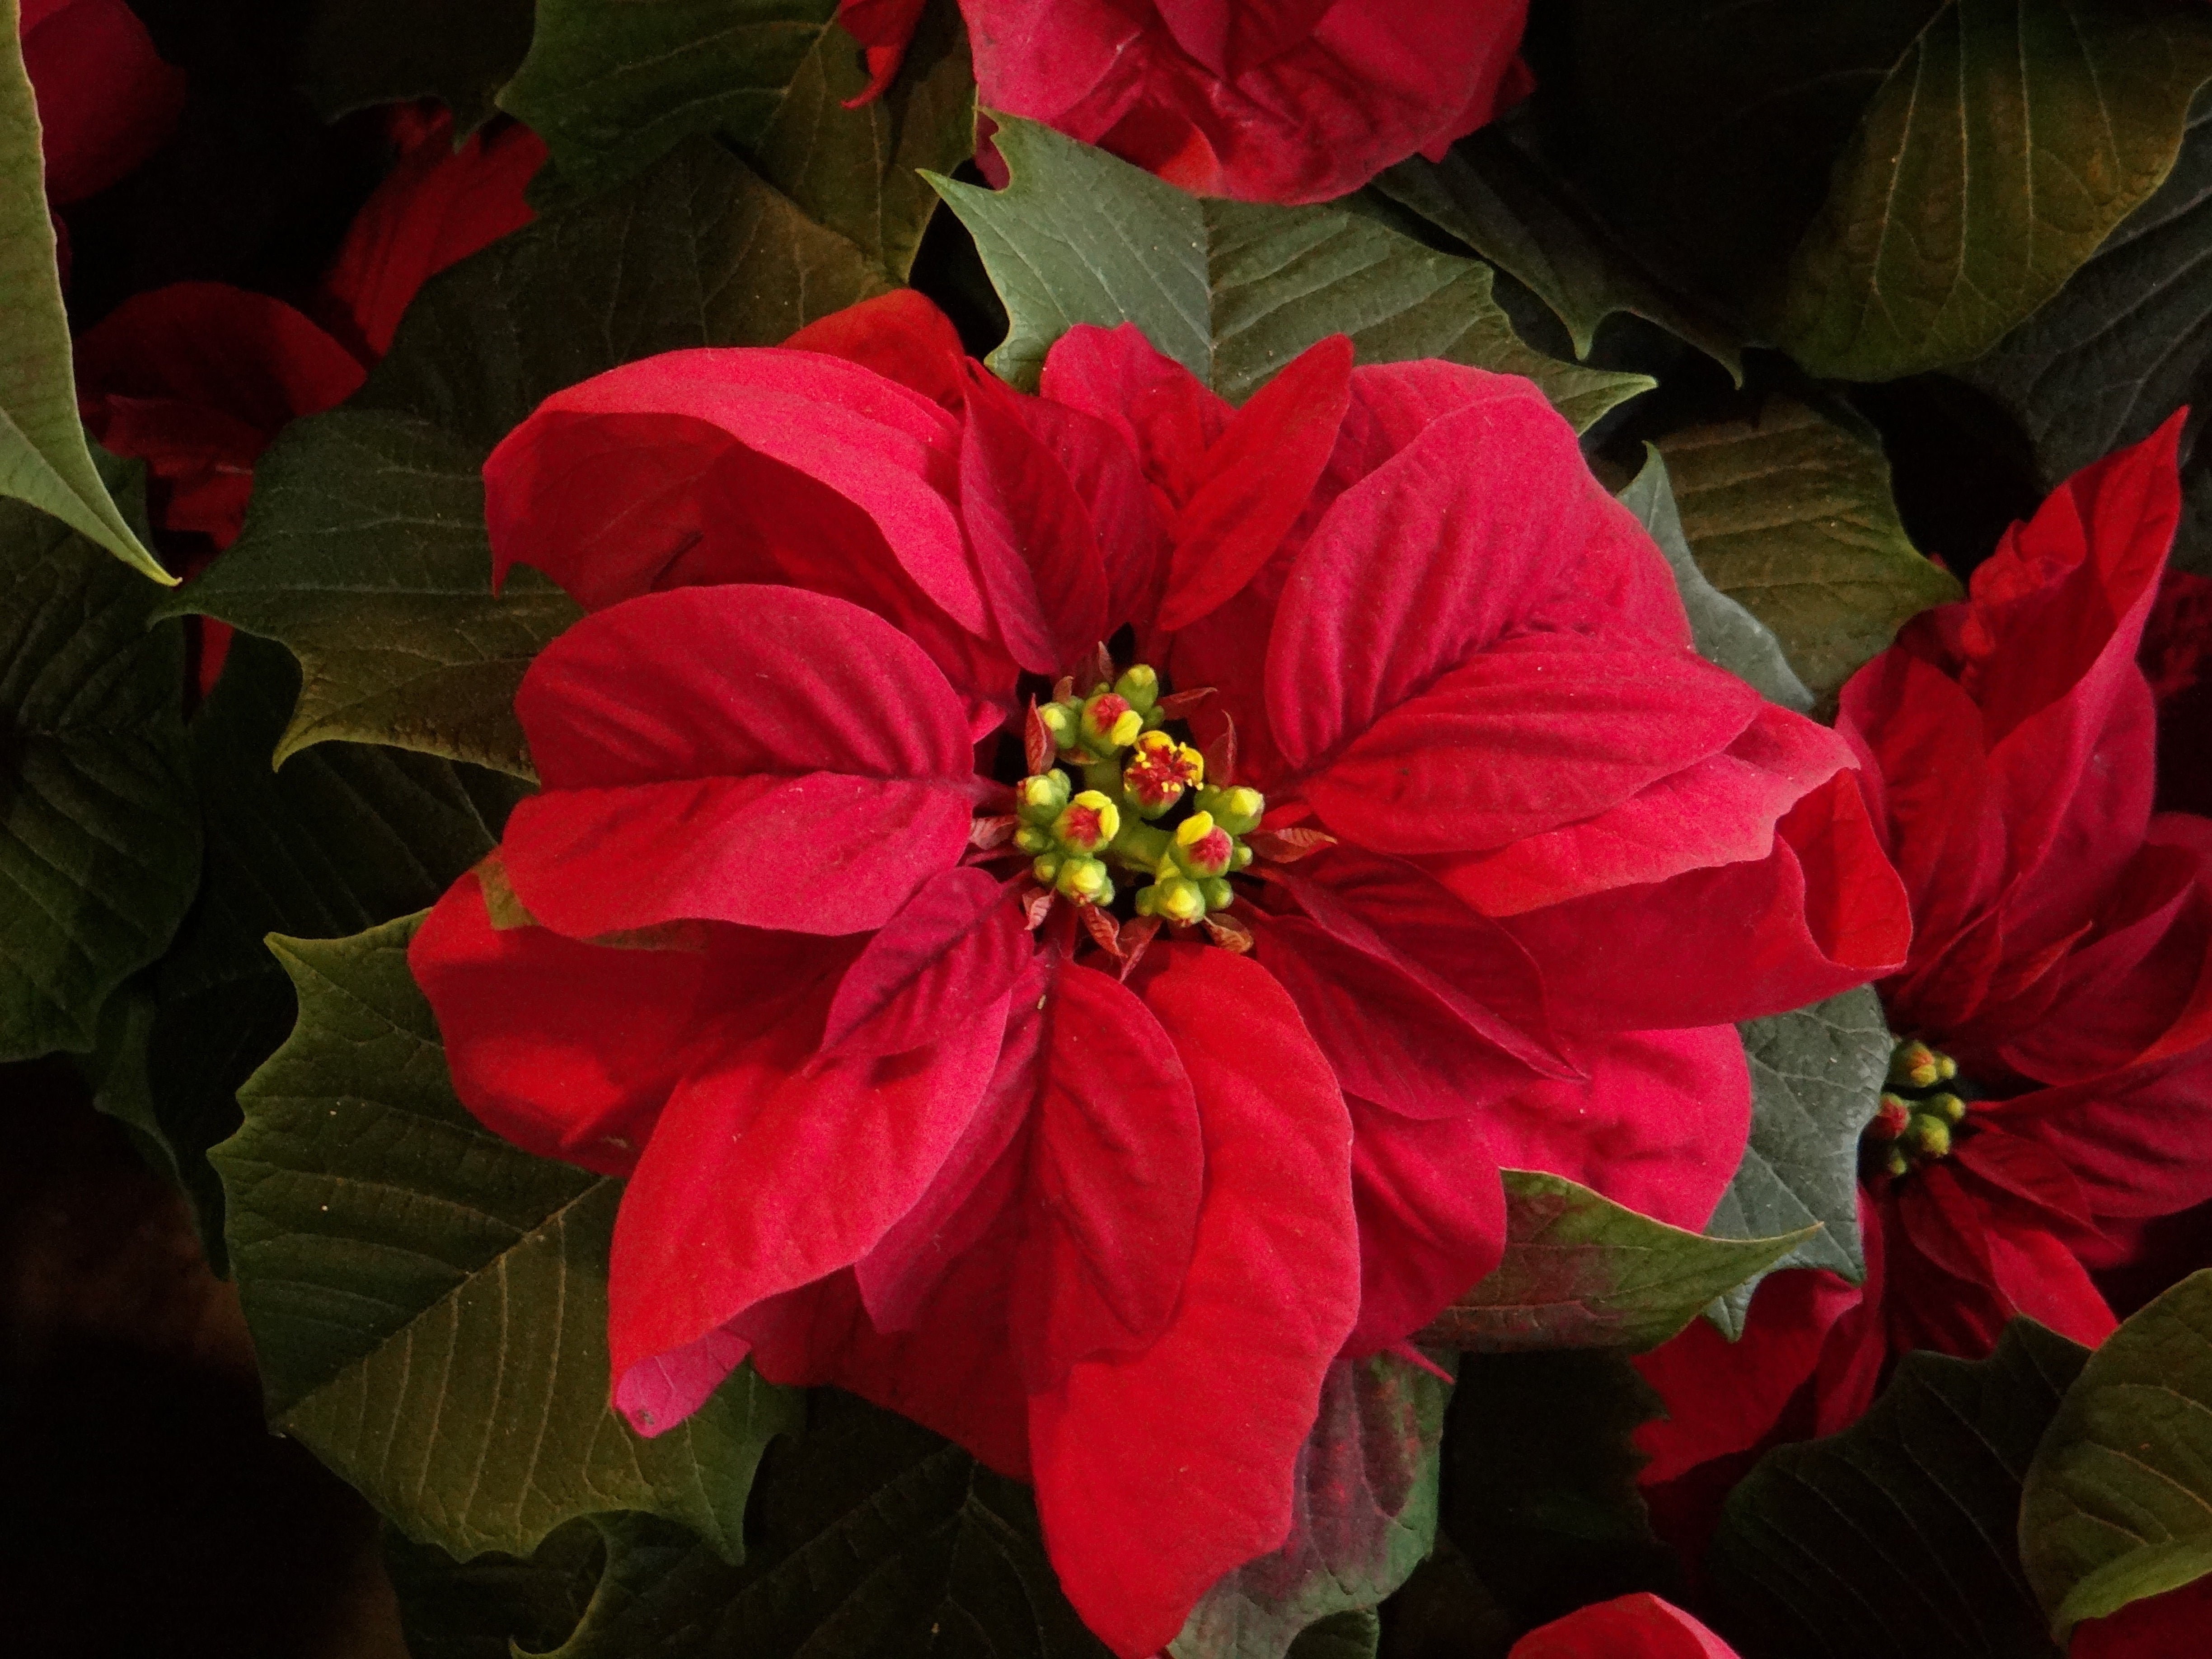 Christmas Eve The Flower Of The Aztec Warriors That Mexico Gave To The World